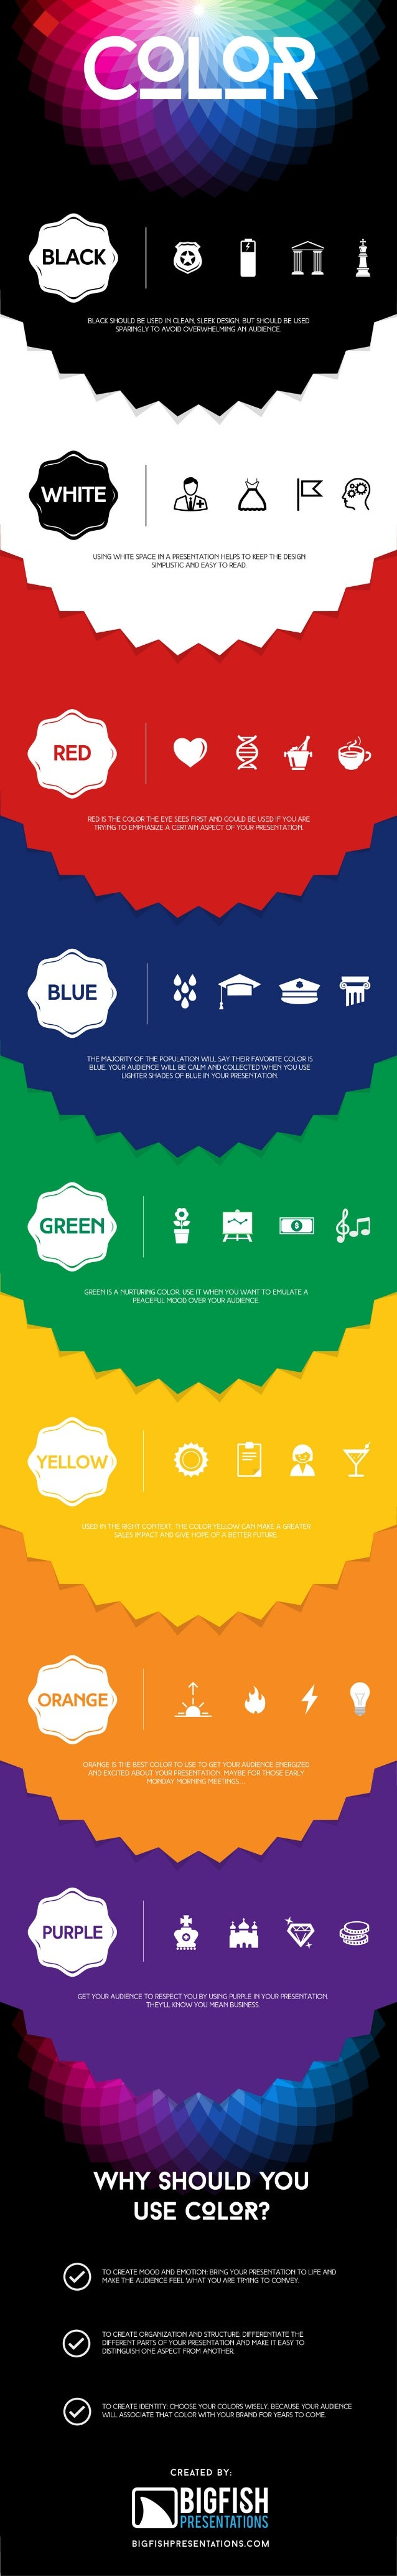 The Psychology of Color in Presentations (Infographic)